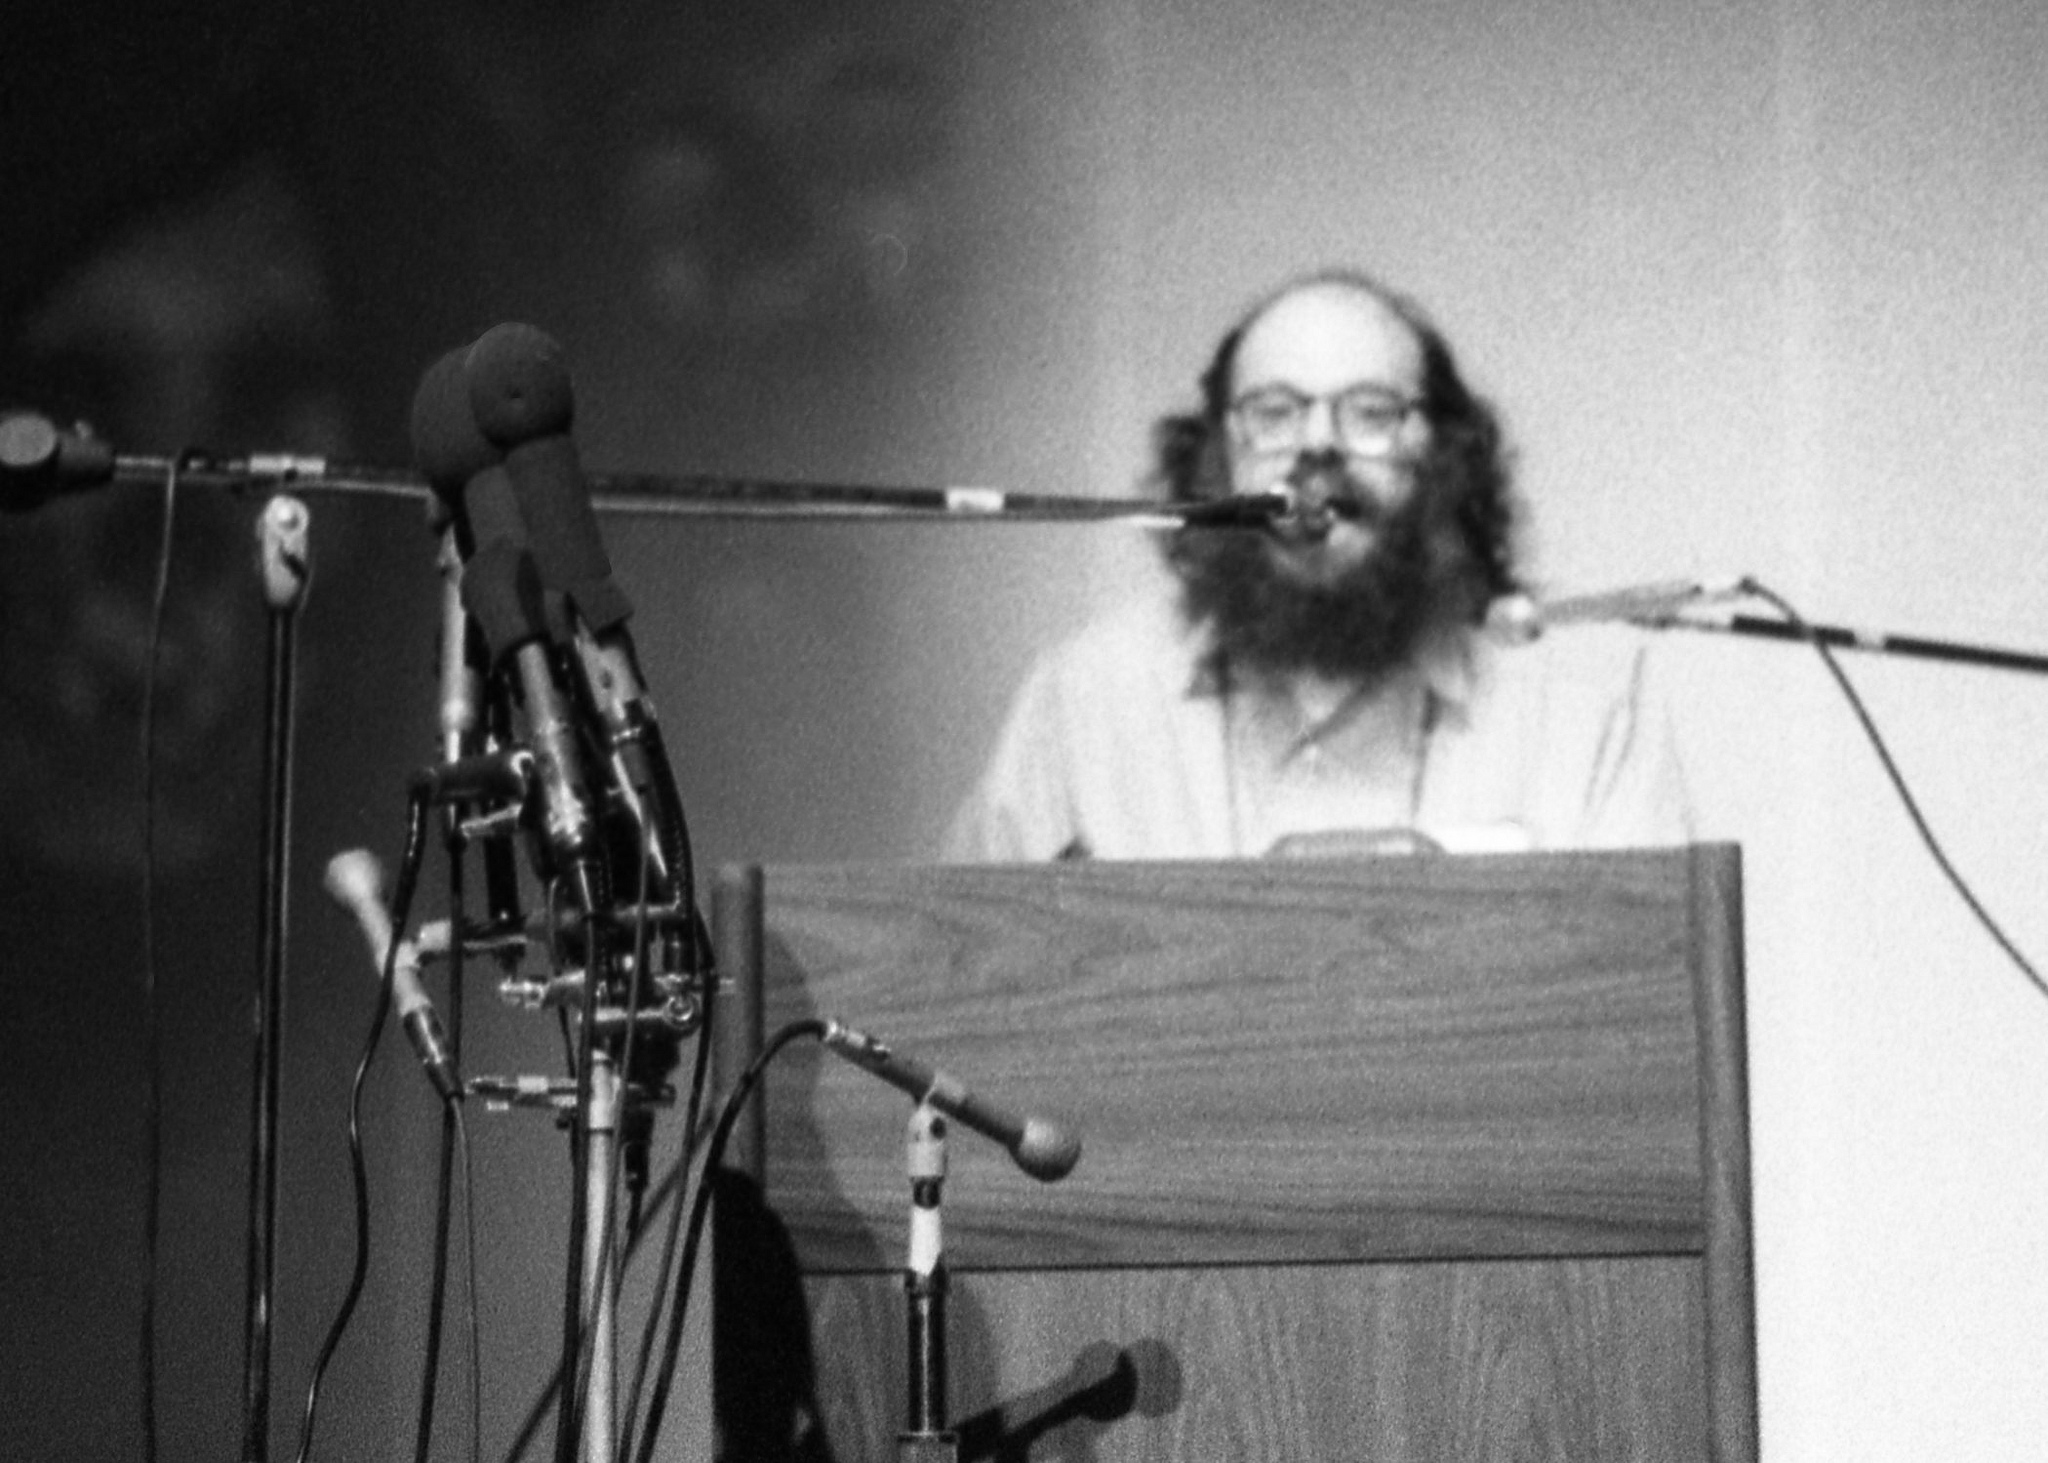 essays on howl by allen ginsberg Theme in howl by allen ginsburg topics: allen ginsberg howl by allen ginsberg essaythat she was third in the senior class , put any test in.